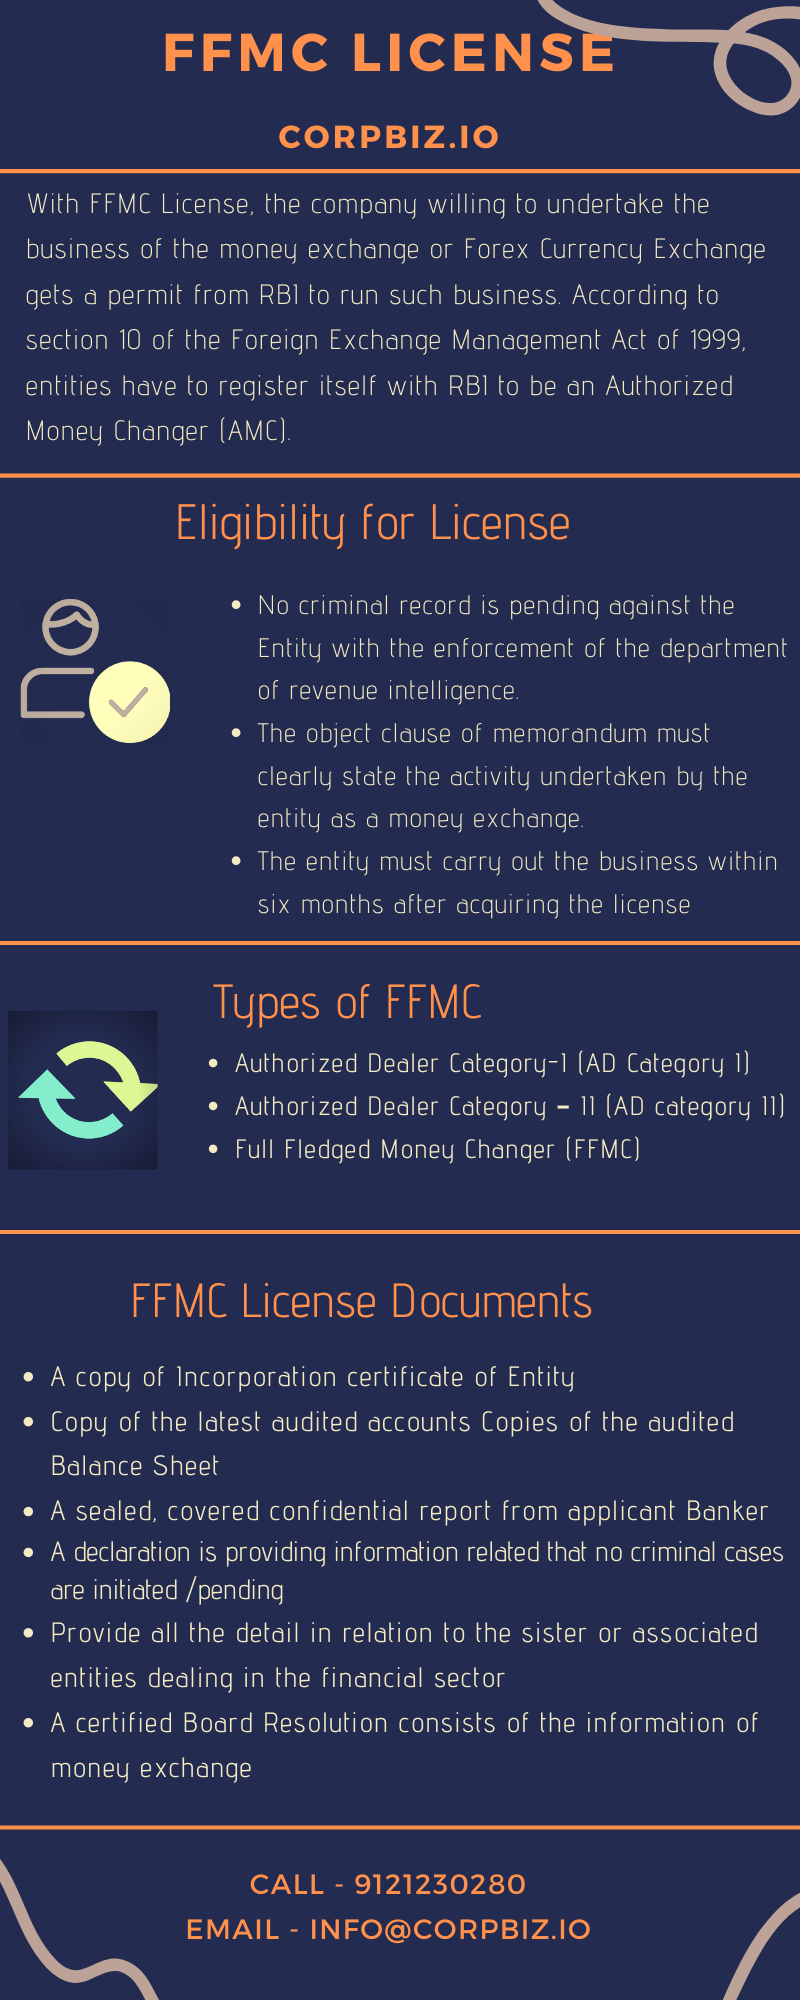 online ffmc license in india corpbiz advisors money changers forex currency financial advisory income tax paid advance cash flow